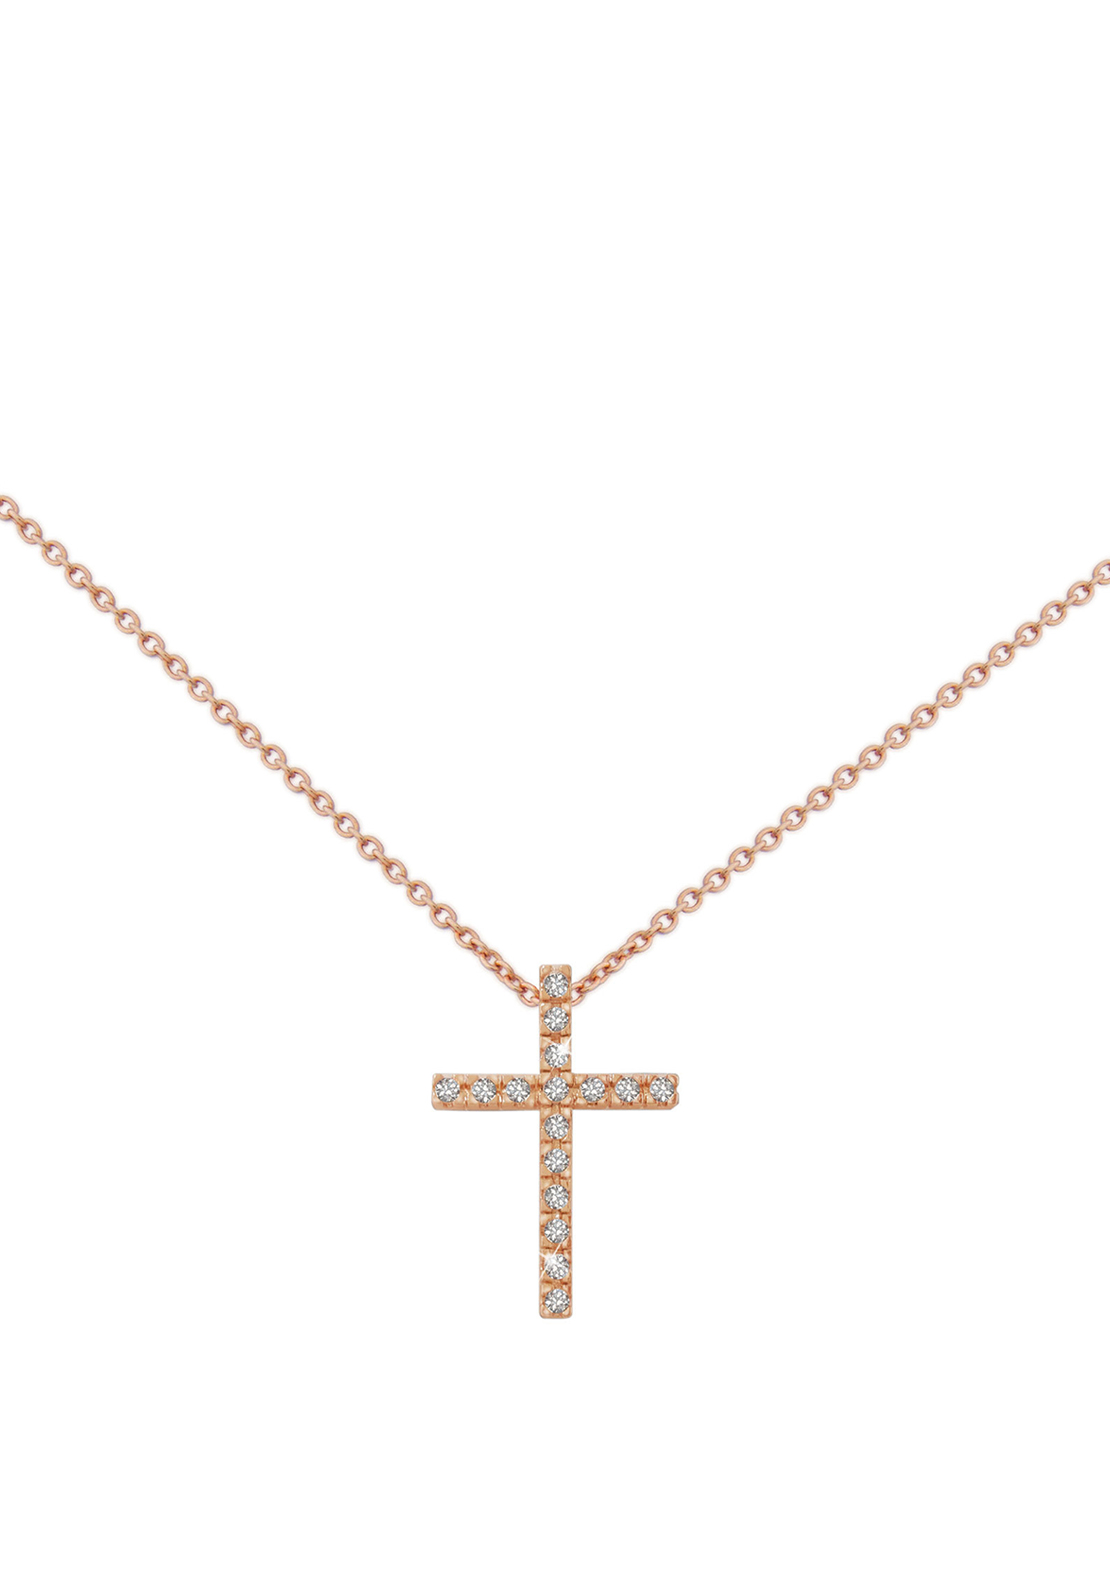 Tipperary Crystal Fine Cross Pendant Necklace, Rose Gold